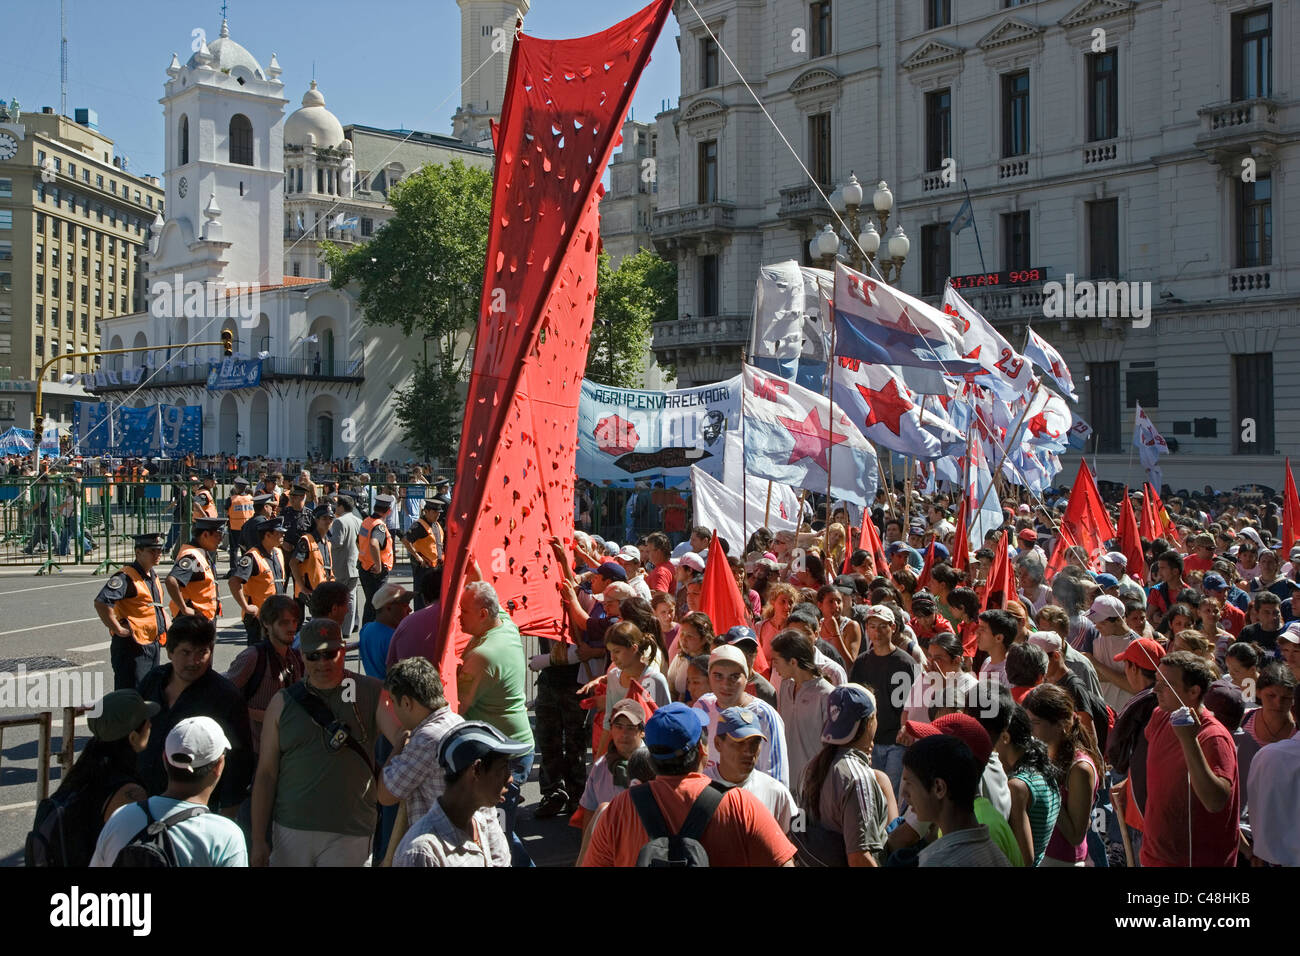 A march to Celebrate the memory of the disappeared in Argentina - Stock Image